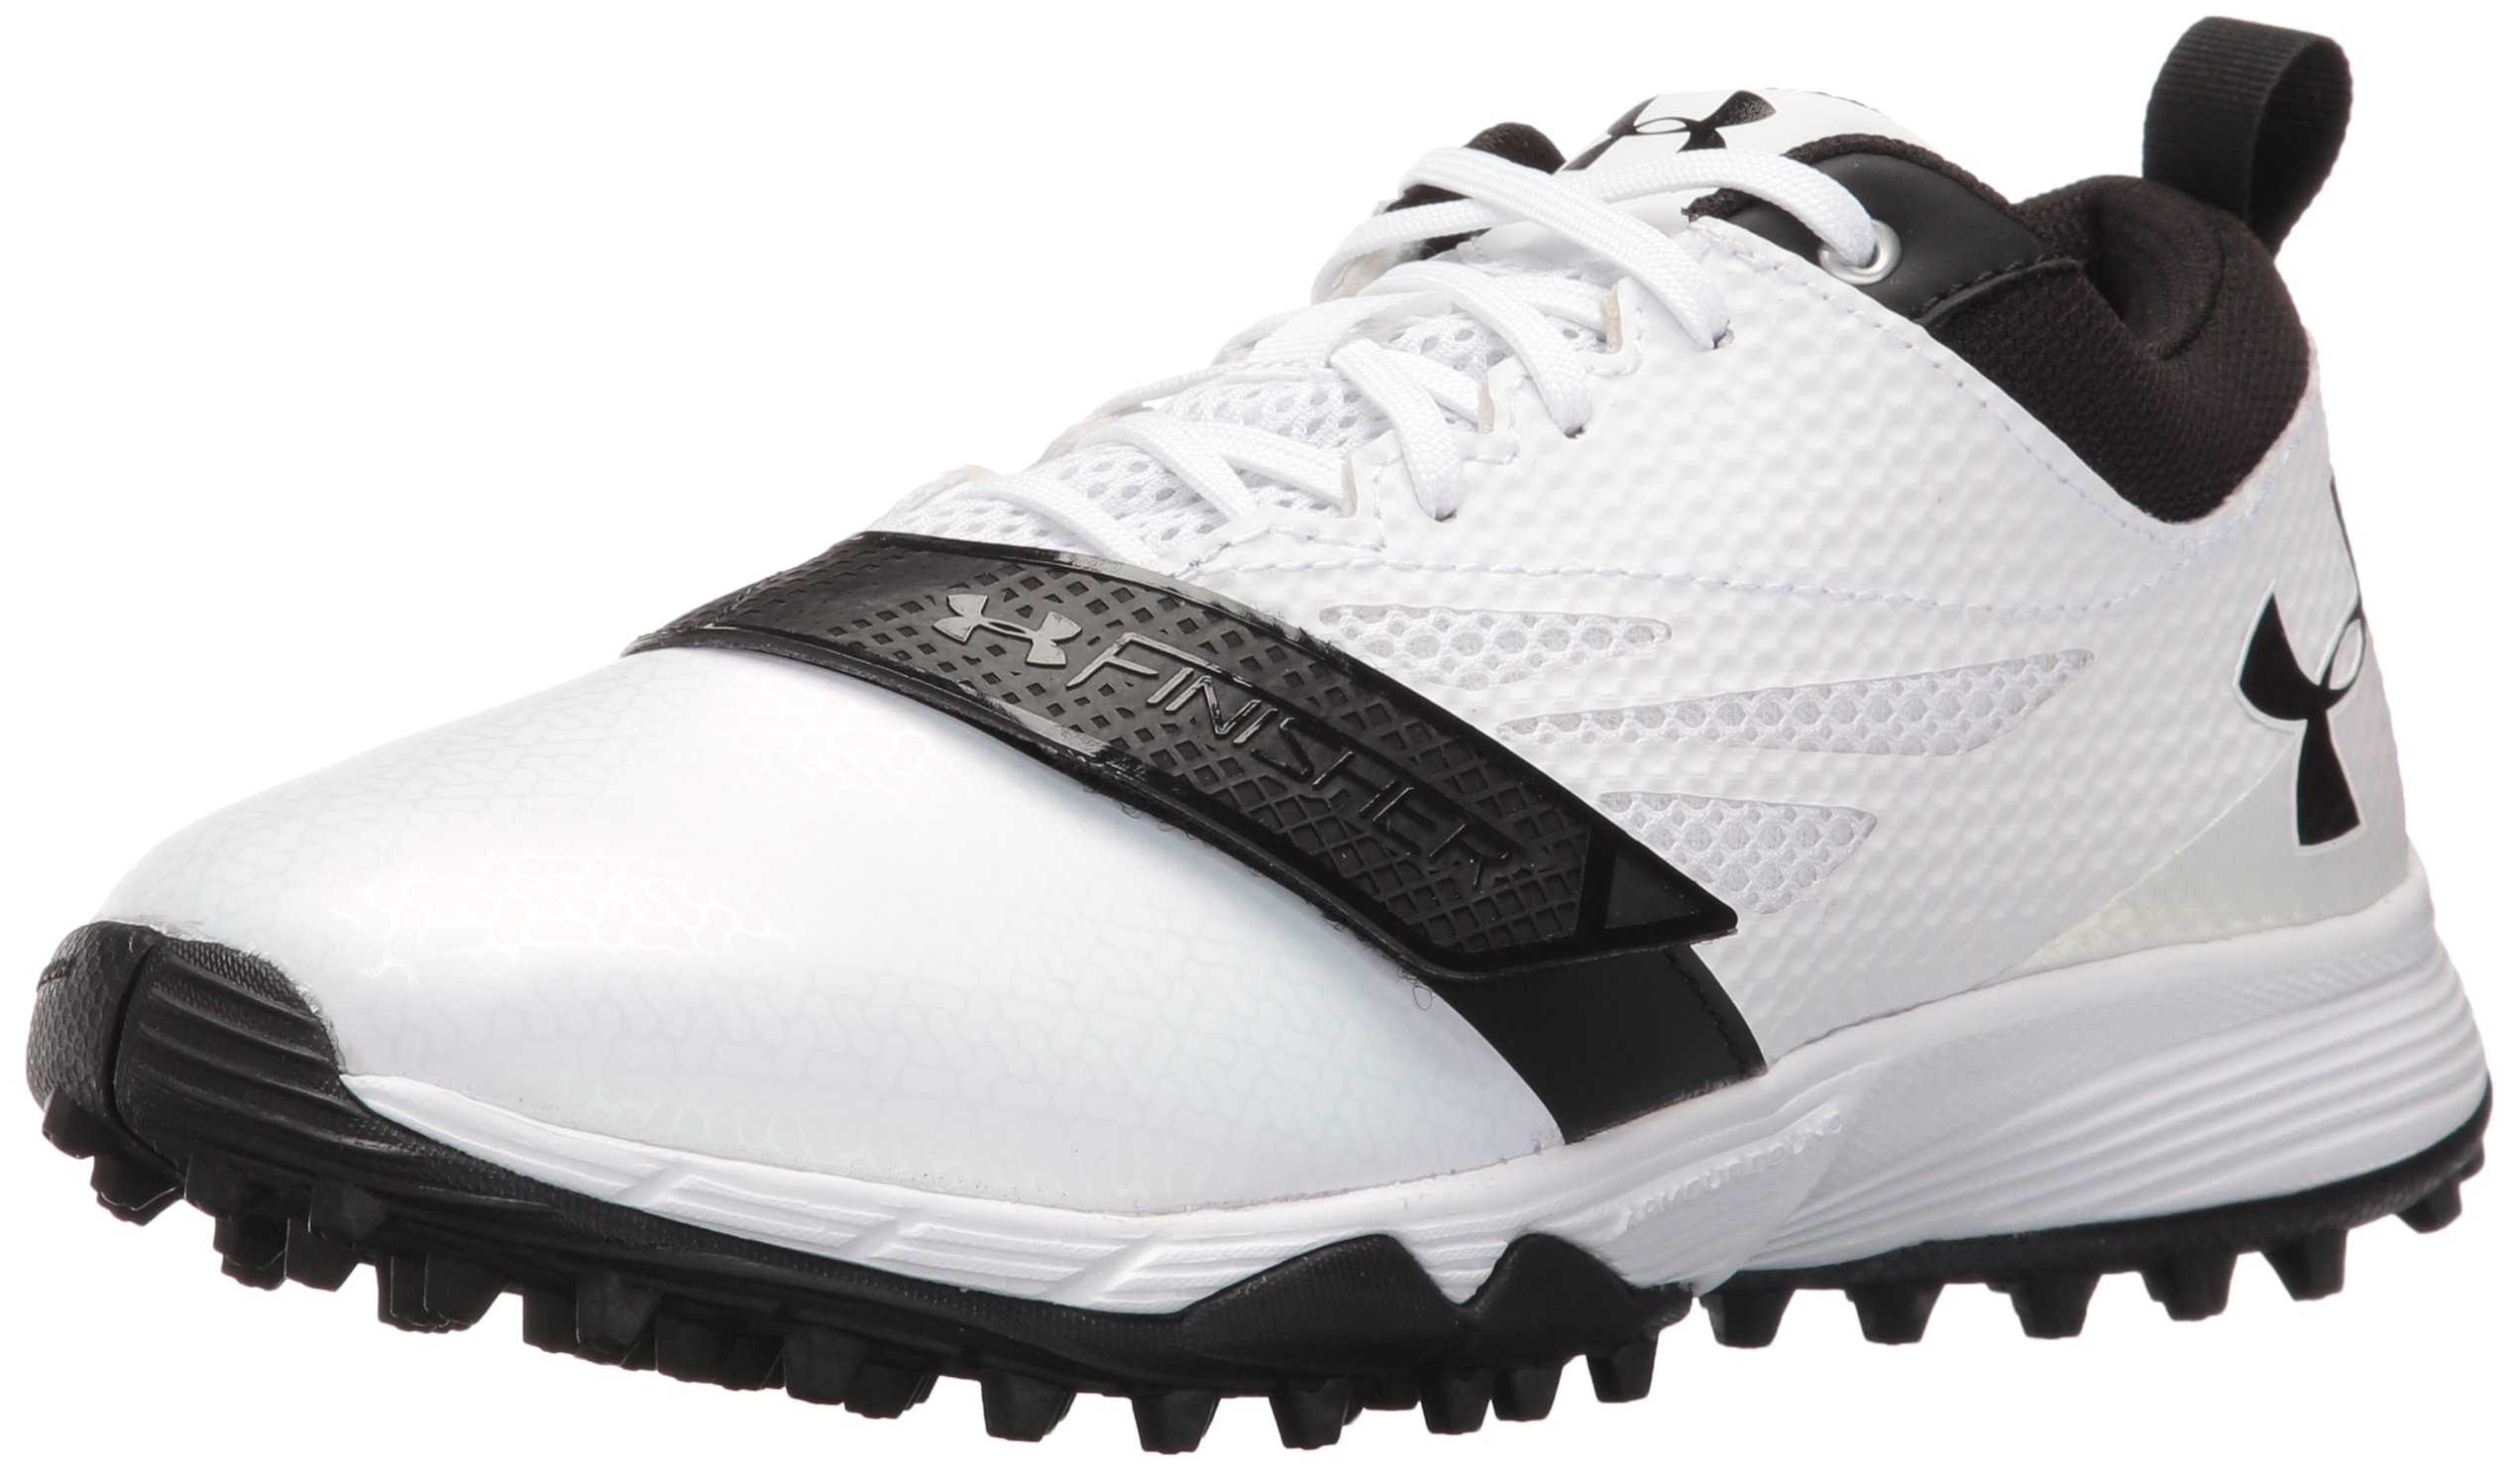 Under Armour Men's Finisher Turf Lacrosse Shoe, White (101)/Black, 6 by Under Armour